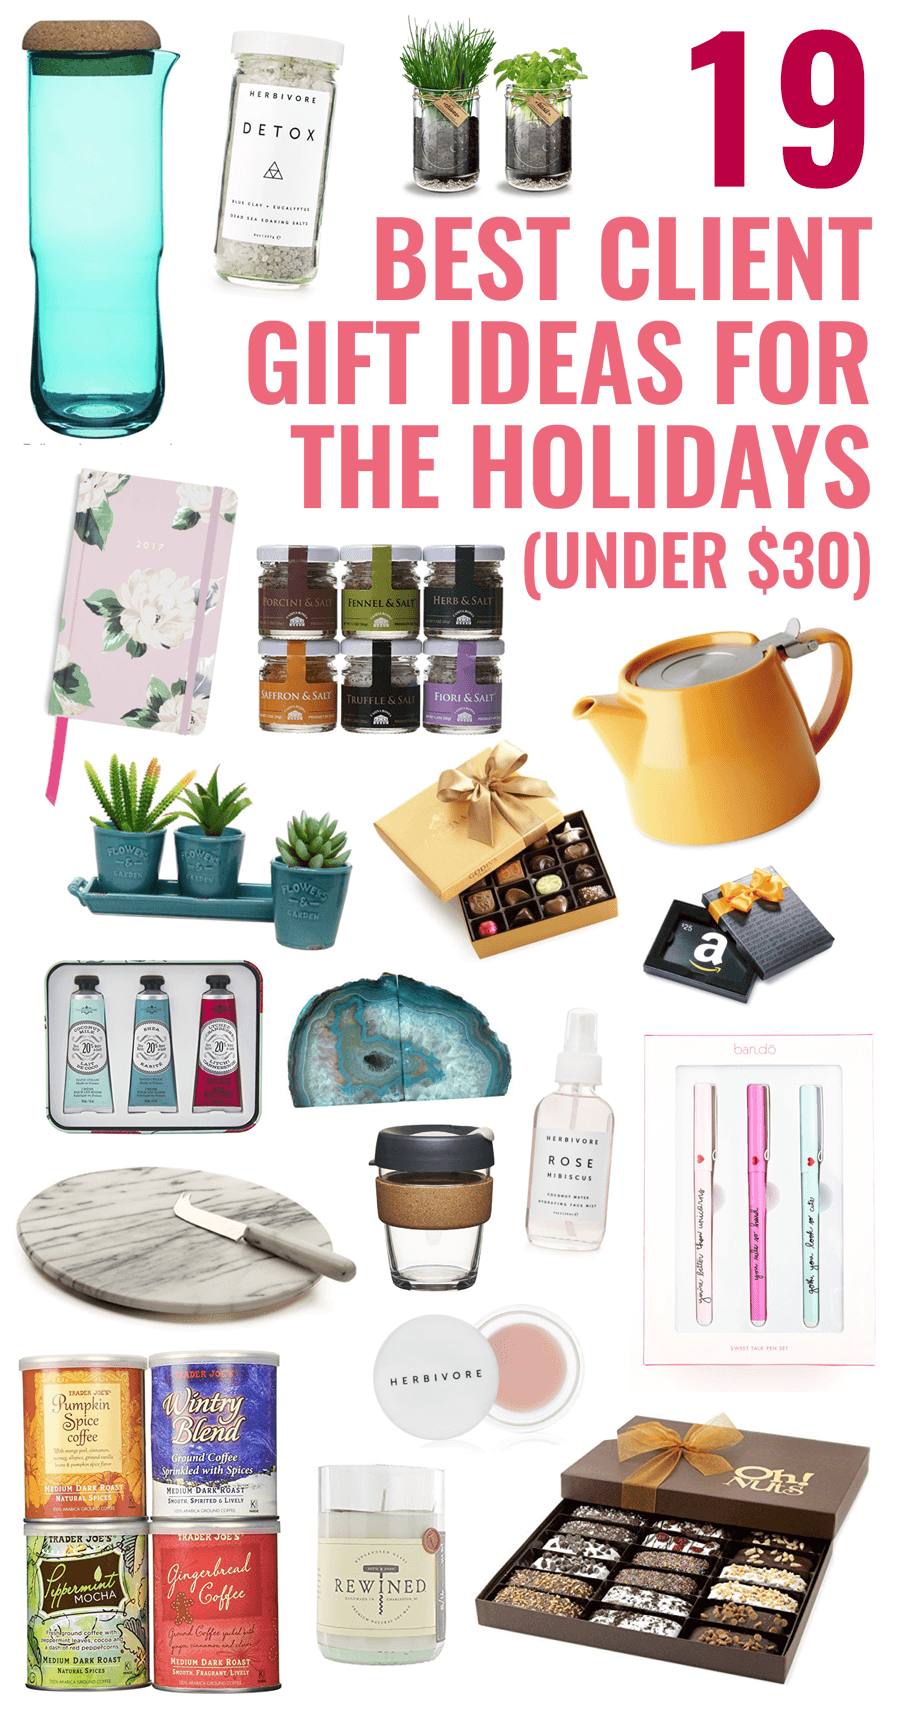 19 Best Client Gift Ideas for the Holidays (under $30!) // Miranda Nahmias